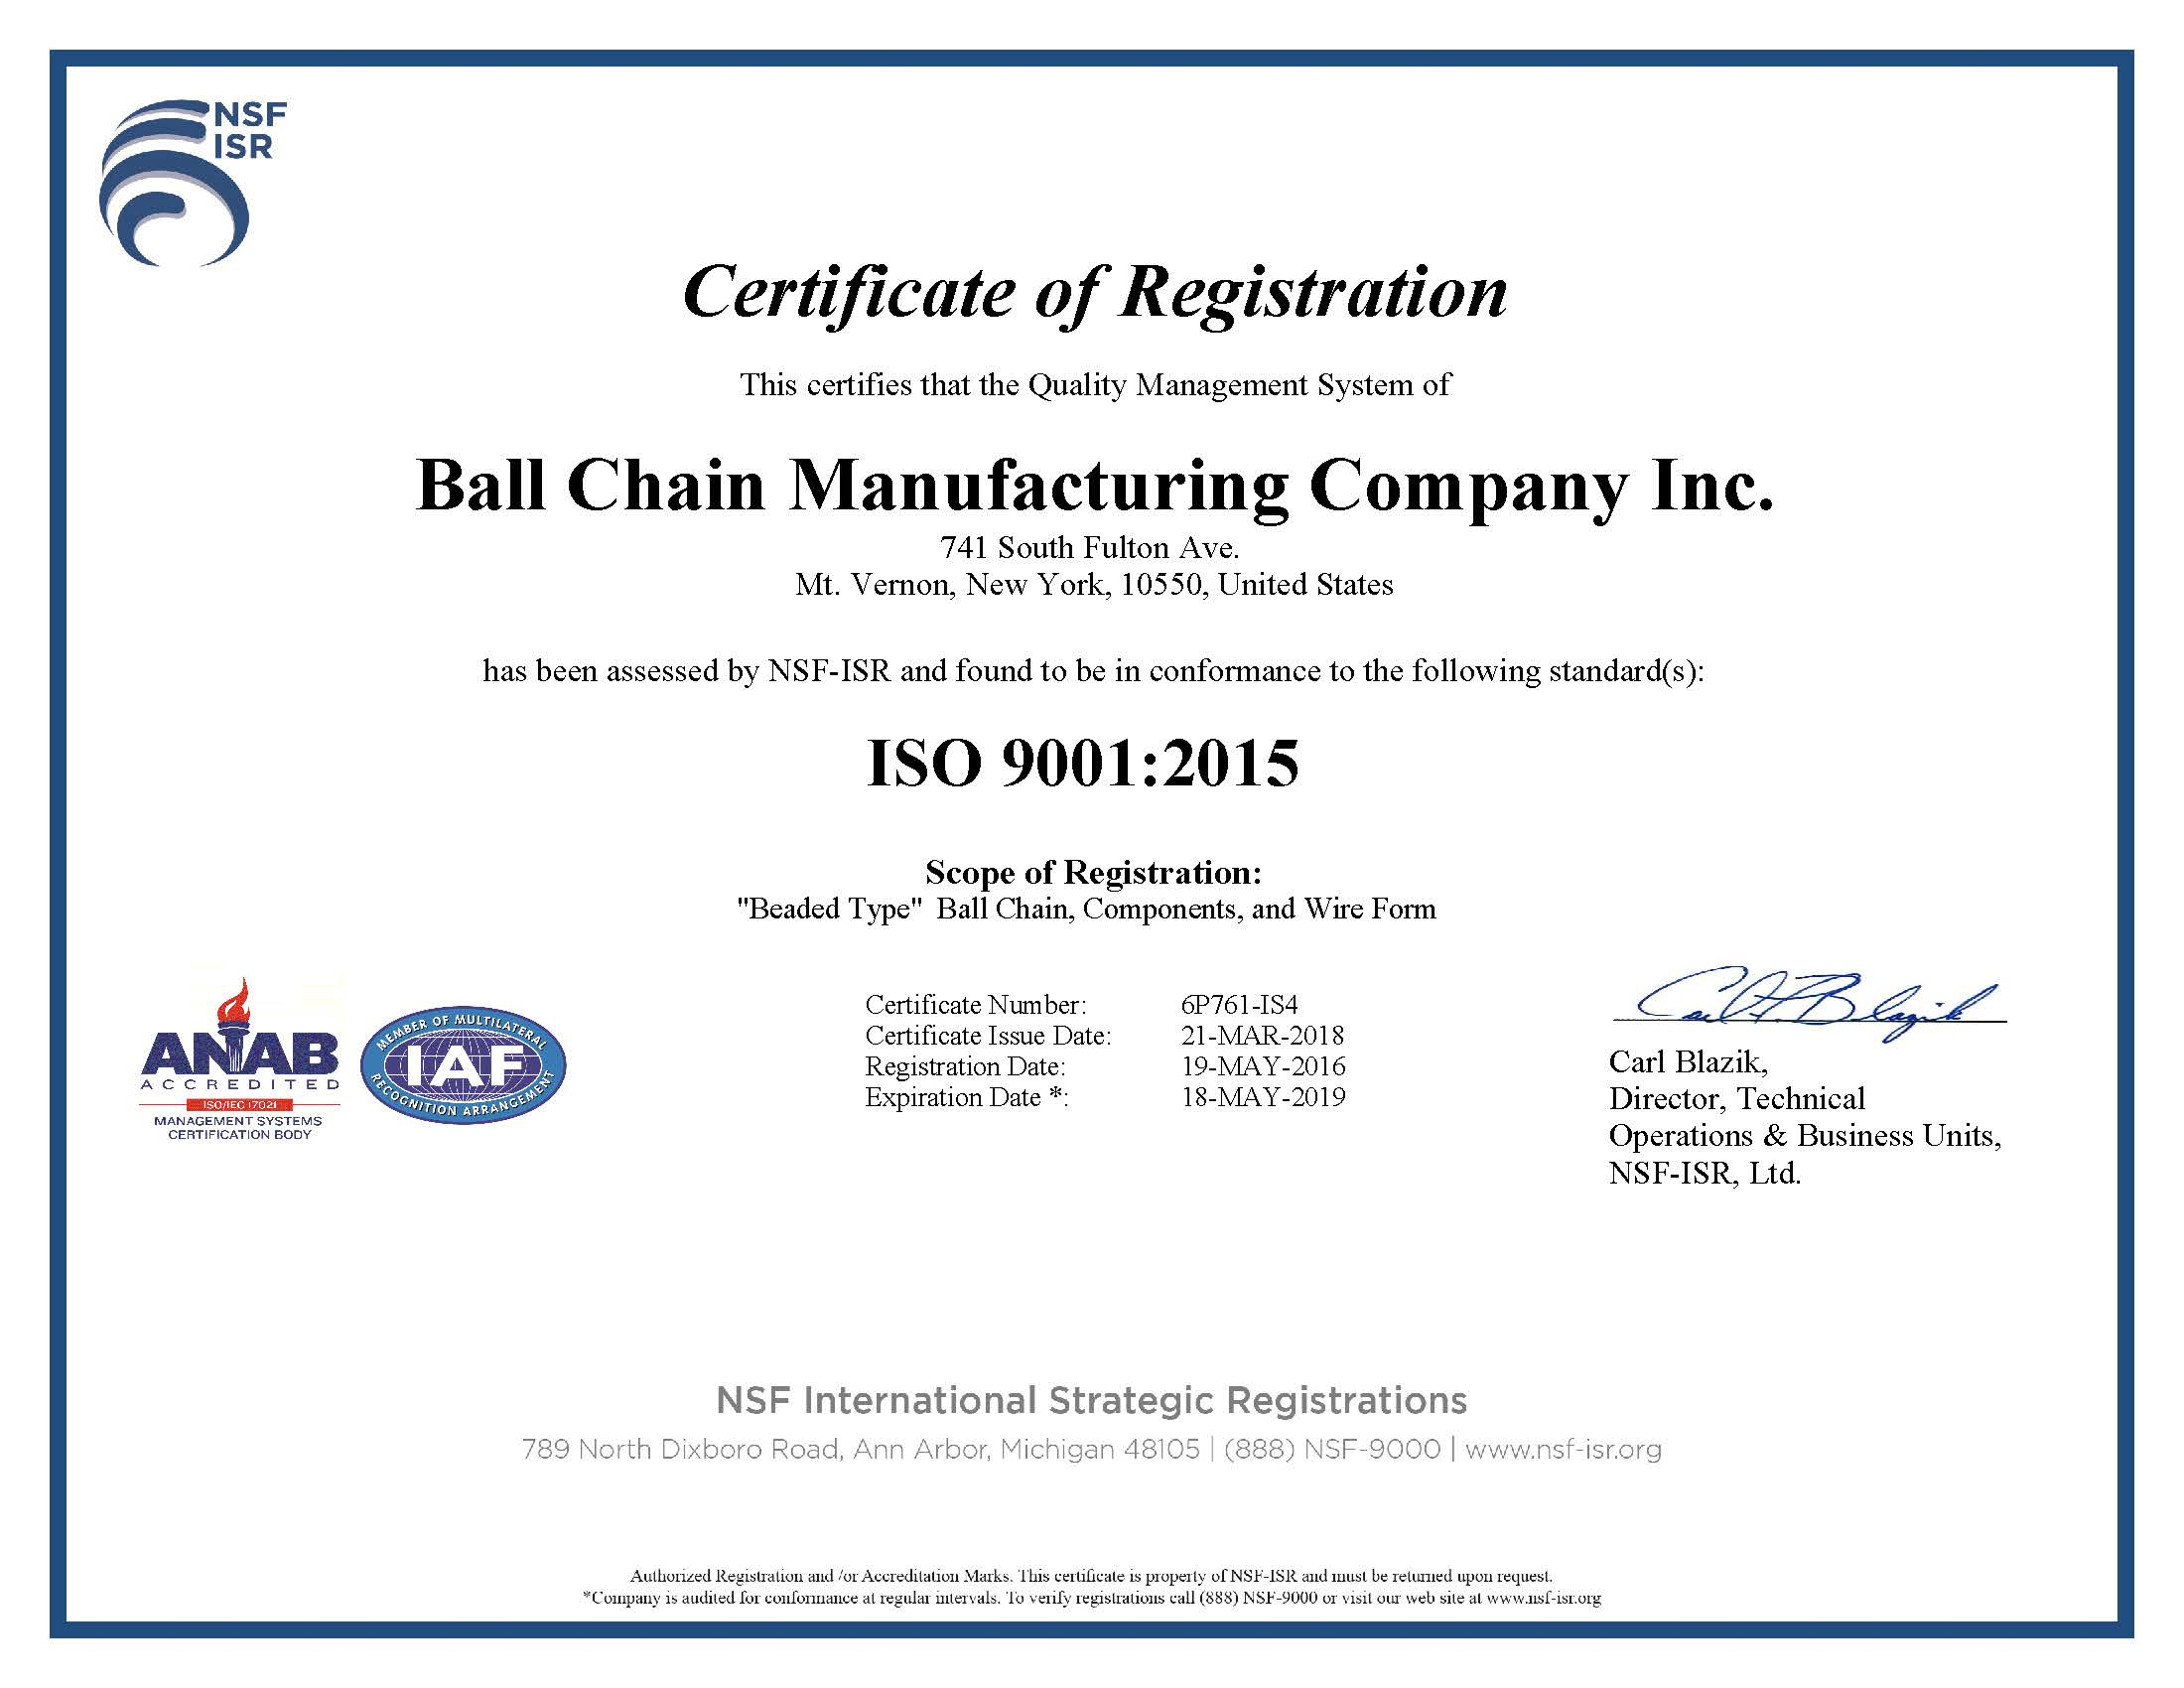 Ball chain is ISO 9001:2015 certified by NSF ISR